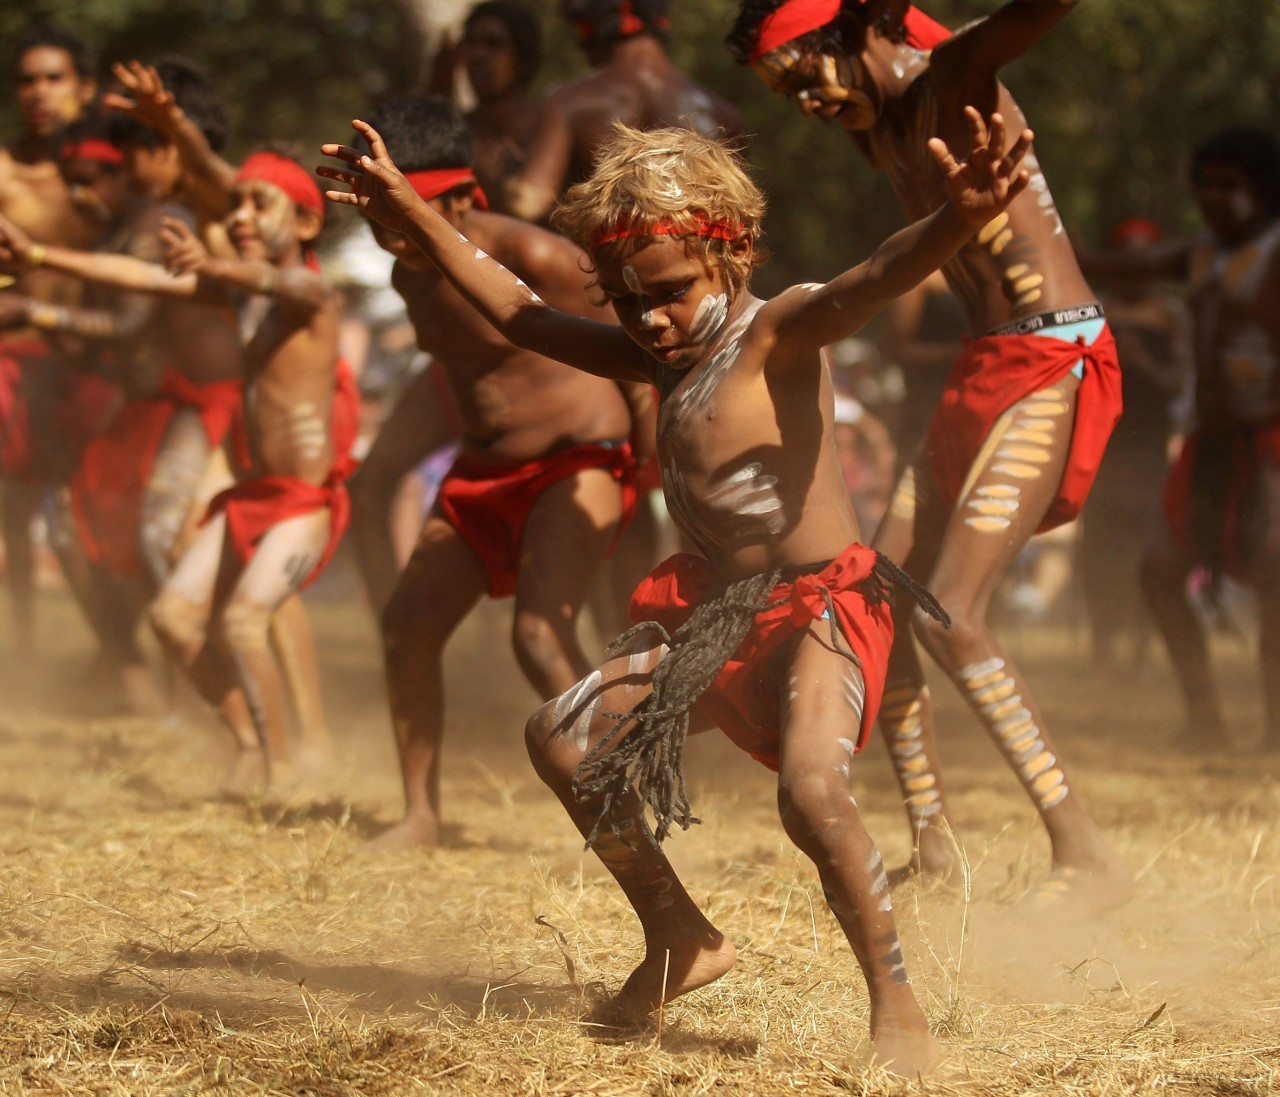 aboriginal treatment in australia Australia's 460,000 aborigines make up 2% of the population and are the most disadvantaged group they have higher rates of infant mortality, drug abuse.